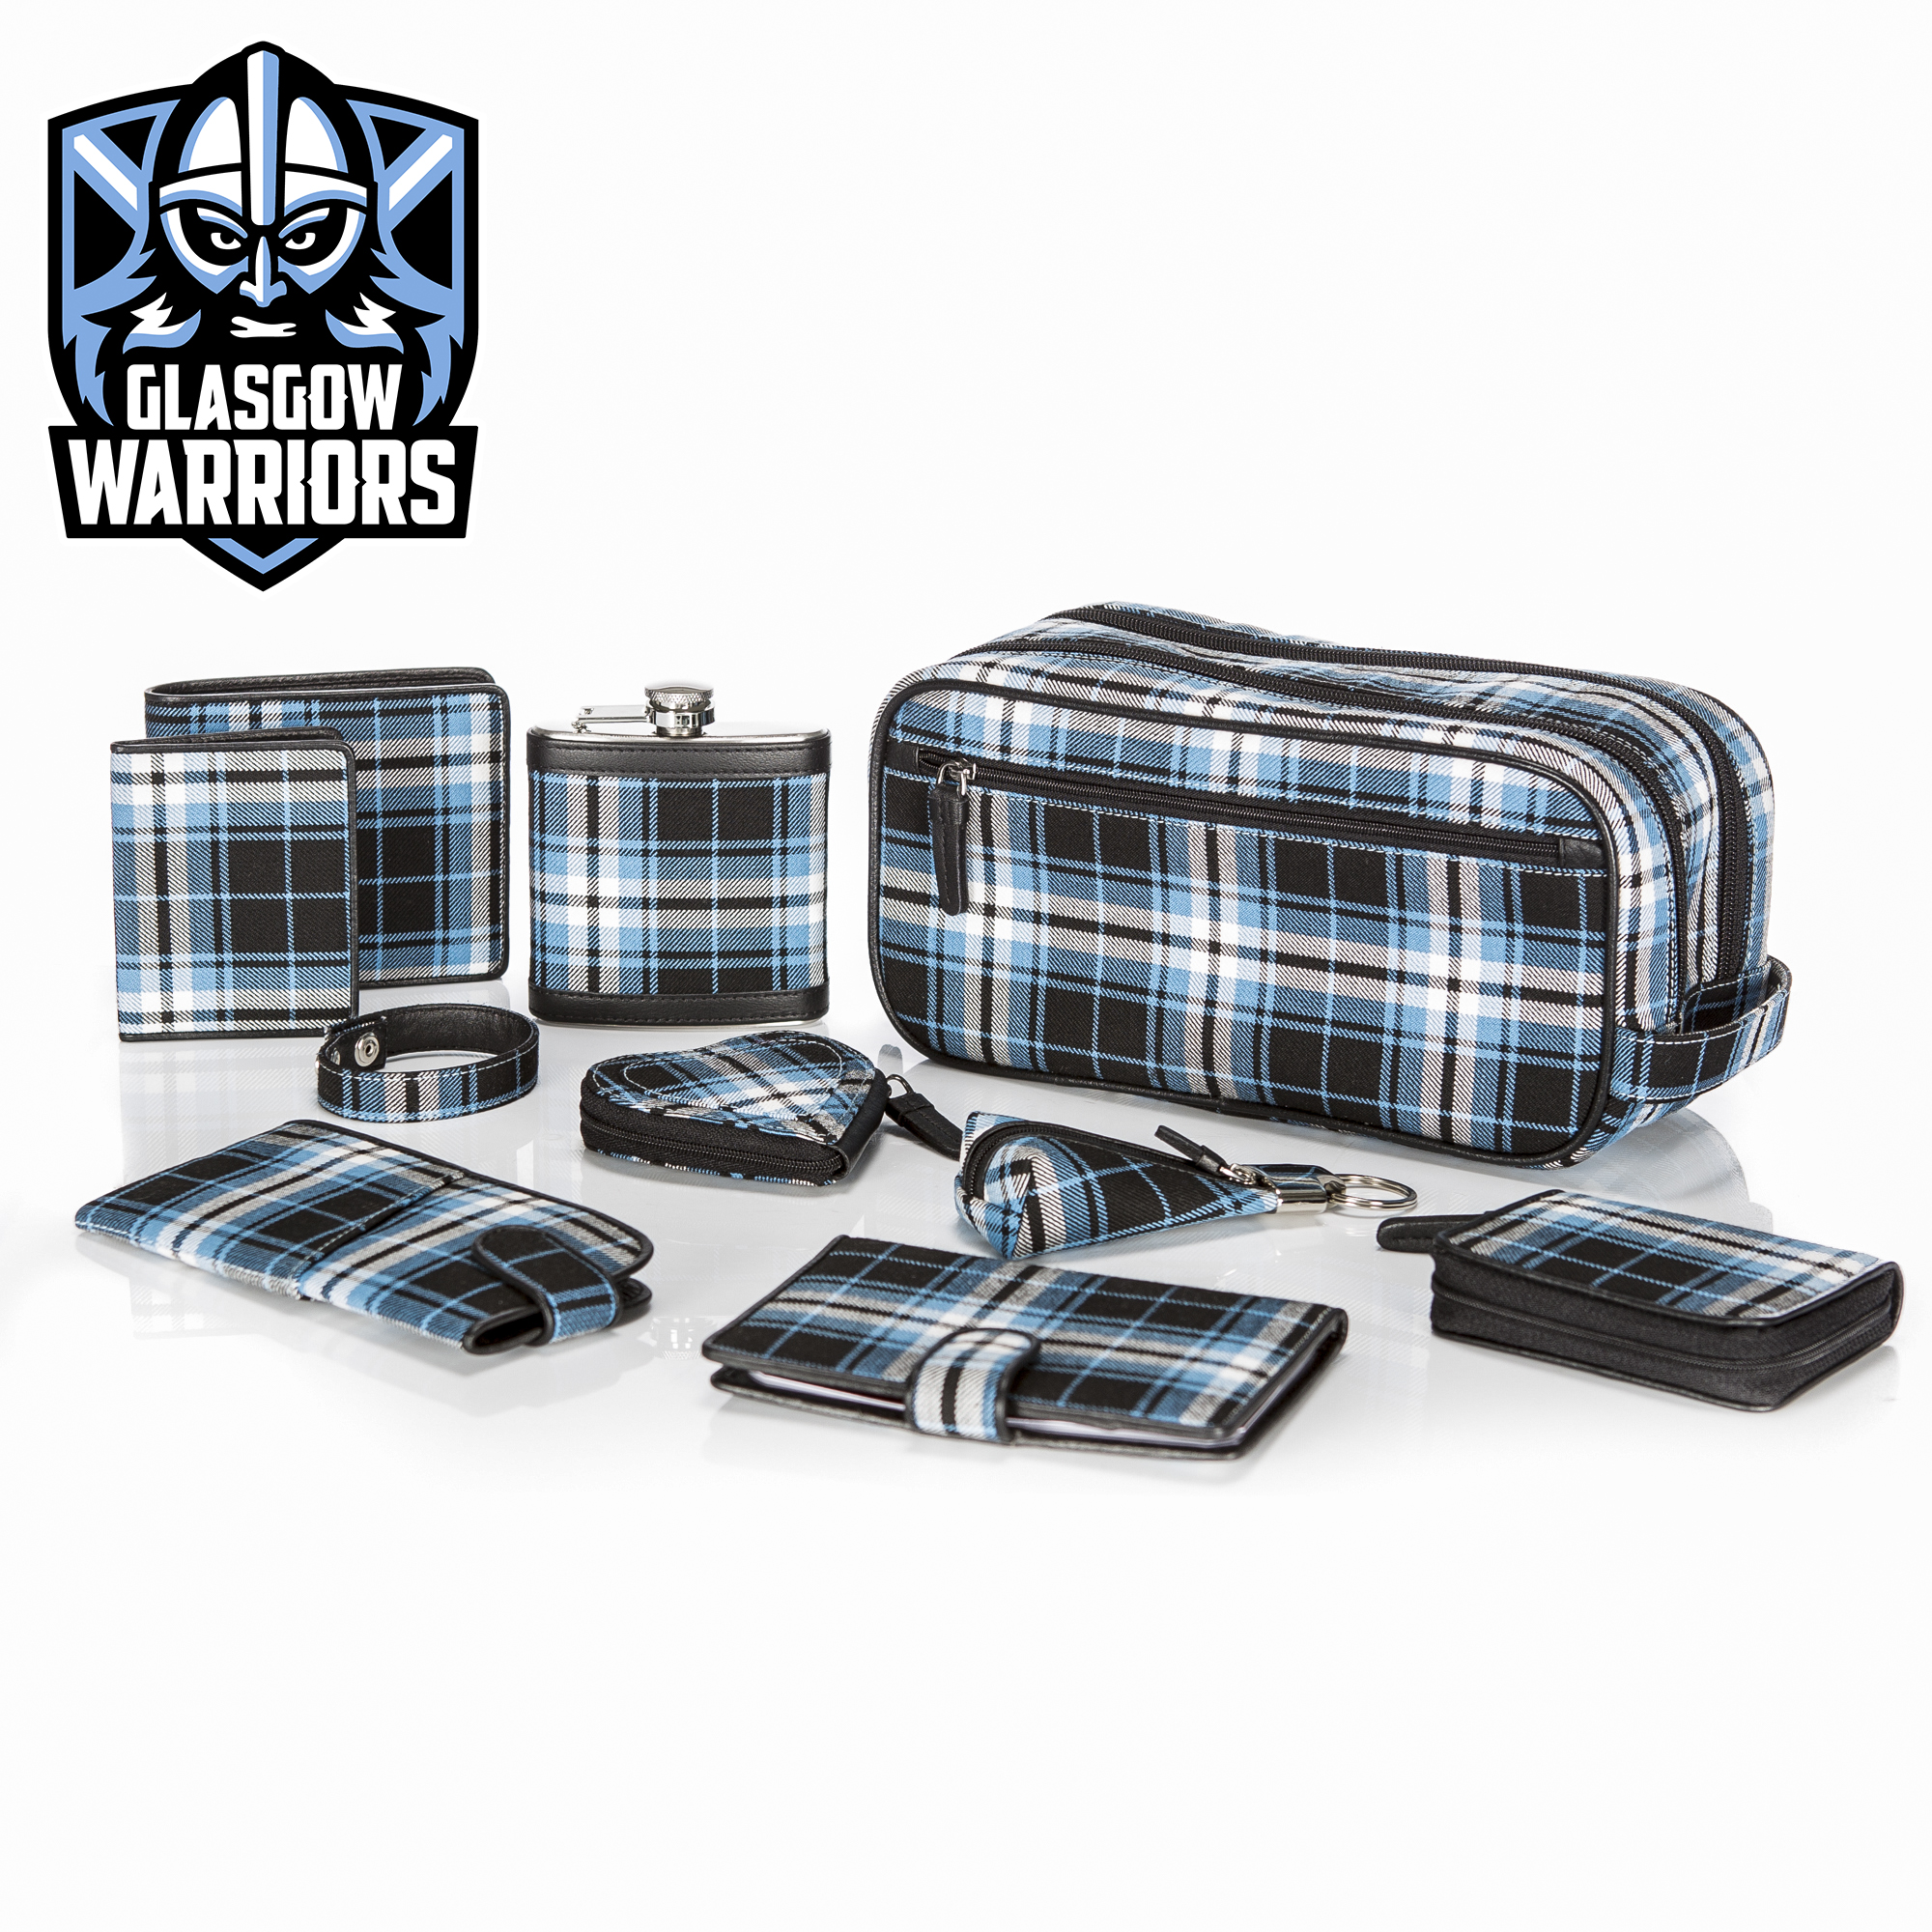 Glasgow Warriors Collection with logo.jpg